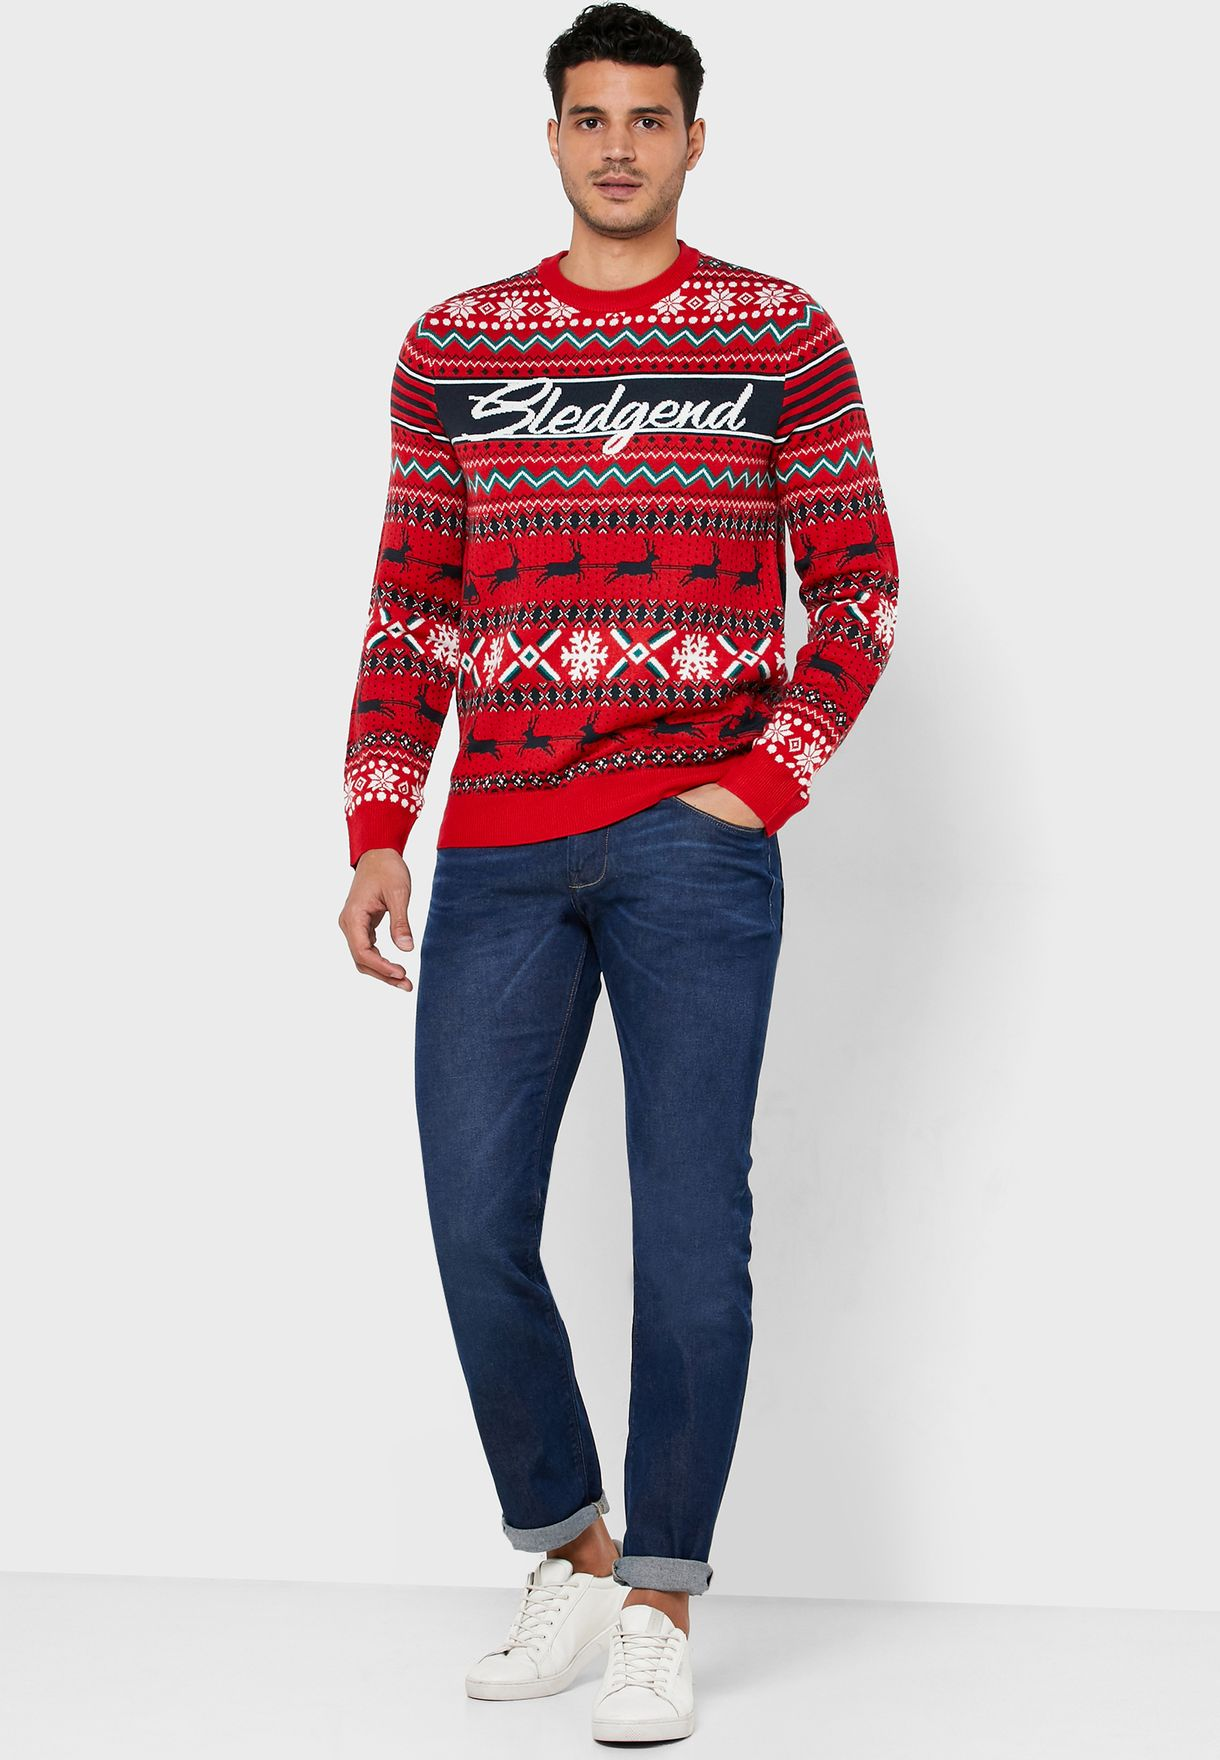 Sledgend Printed Knitted Sweater